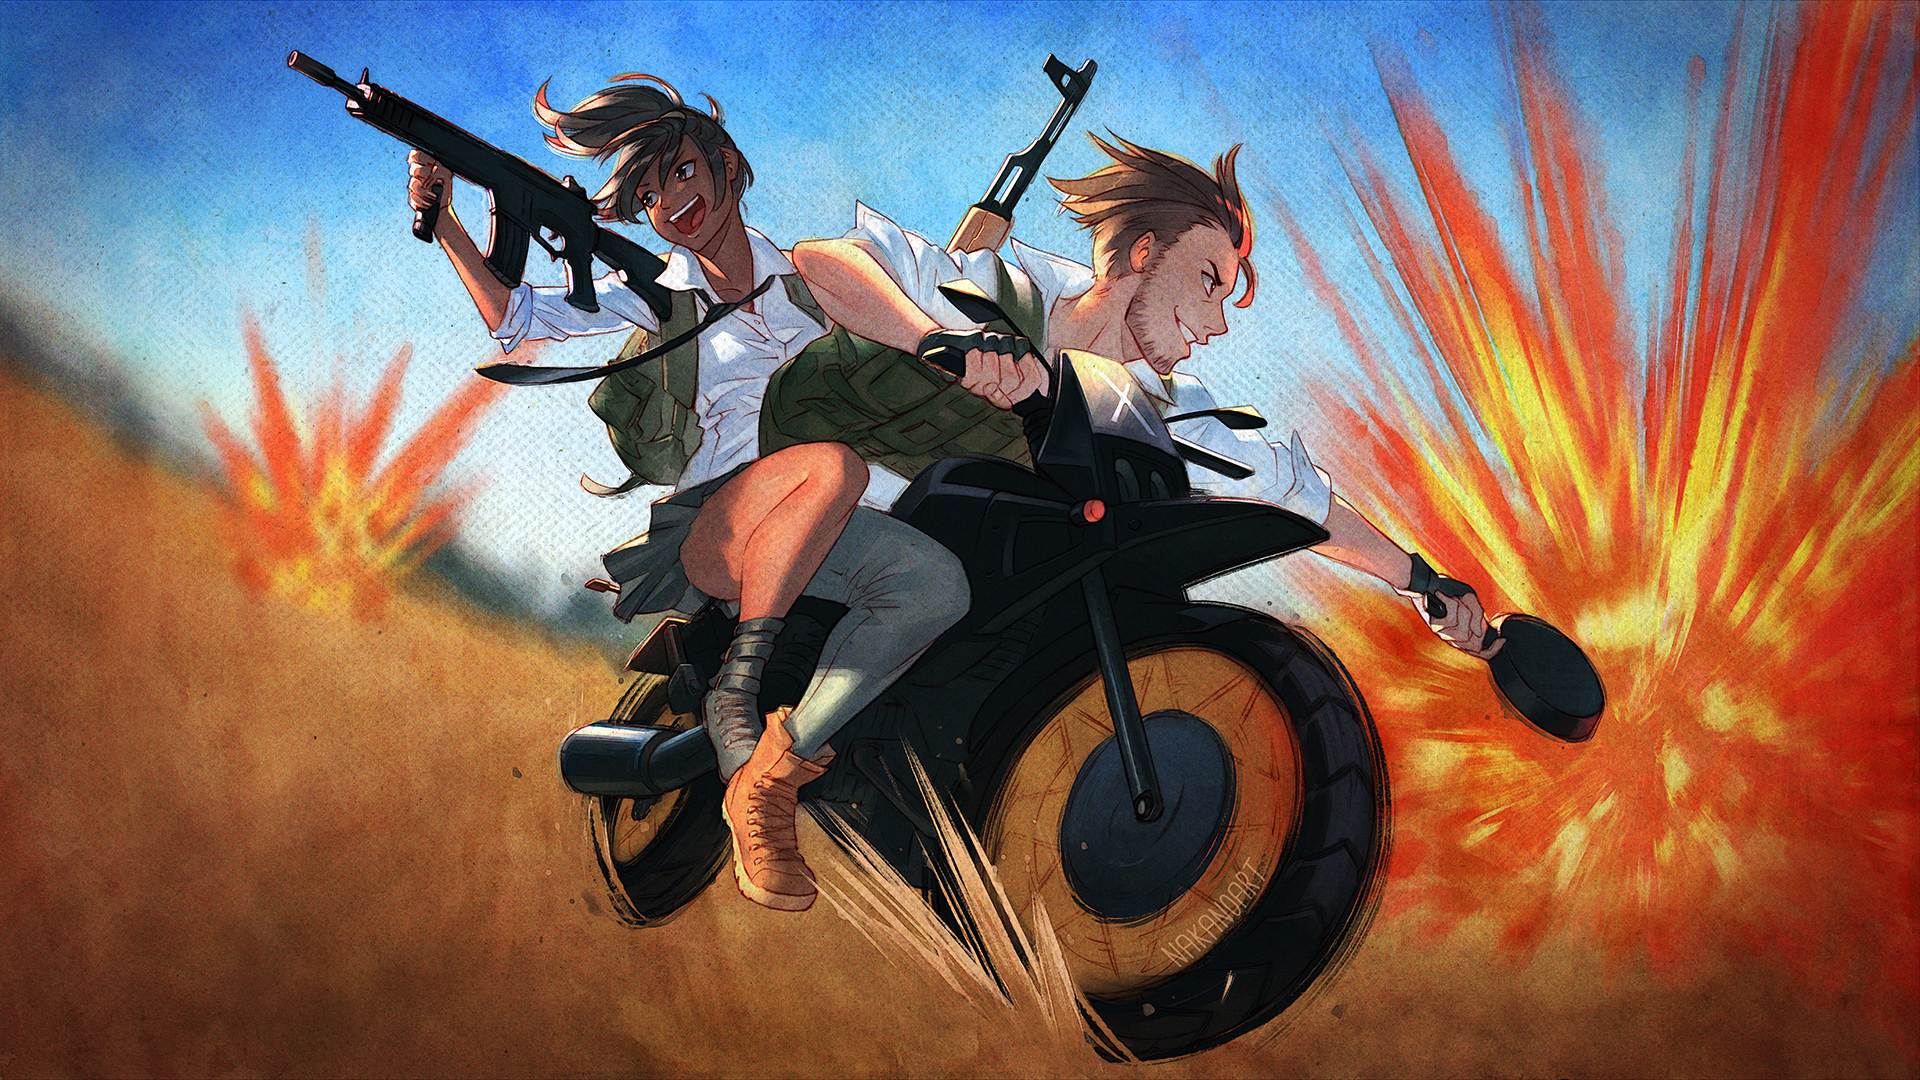 1920x1080 Pubg Artwork 4k Laptop Full Hd 1080p Hd 4k